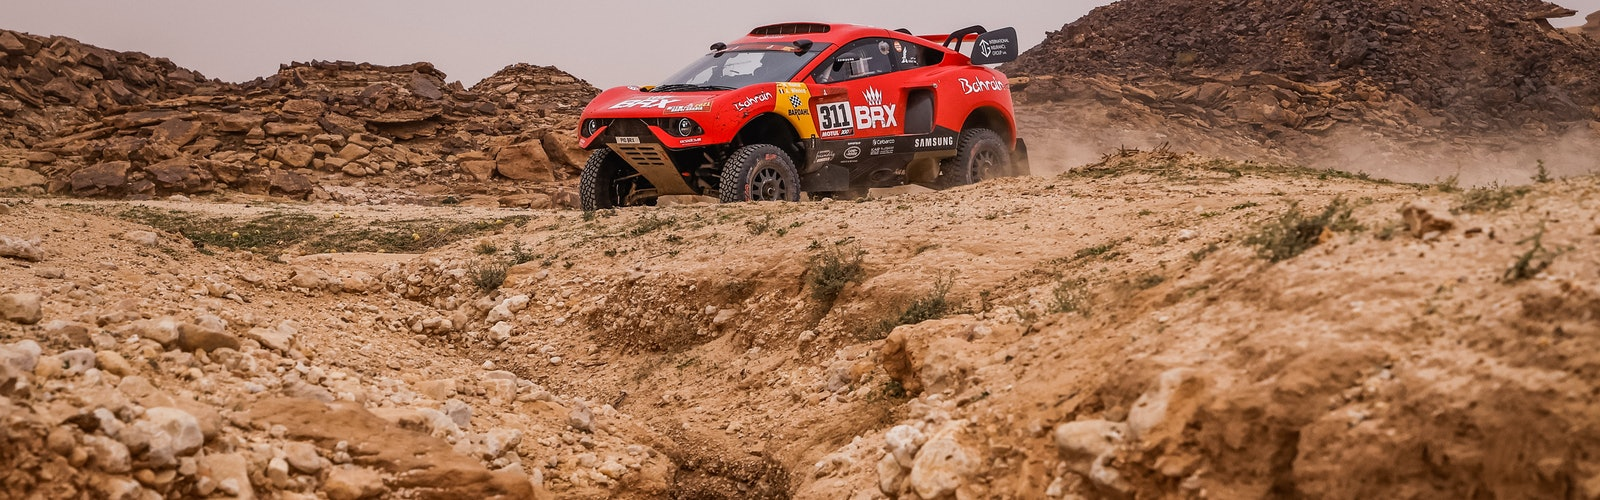 AUTO – DAKAR 2021 – SAUDI ARABIA – PART 2